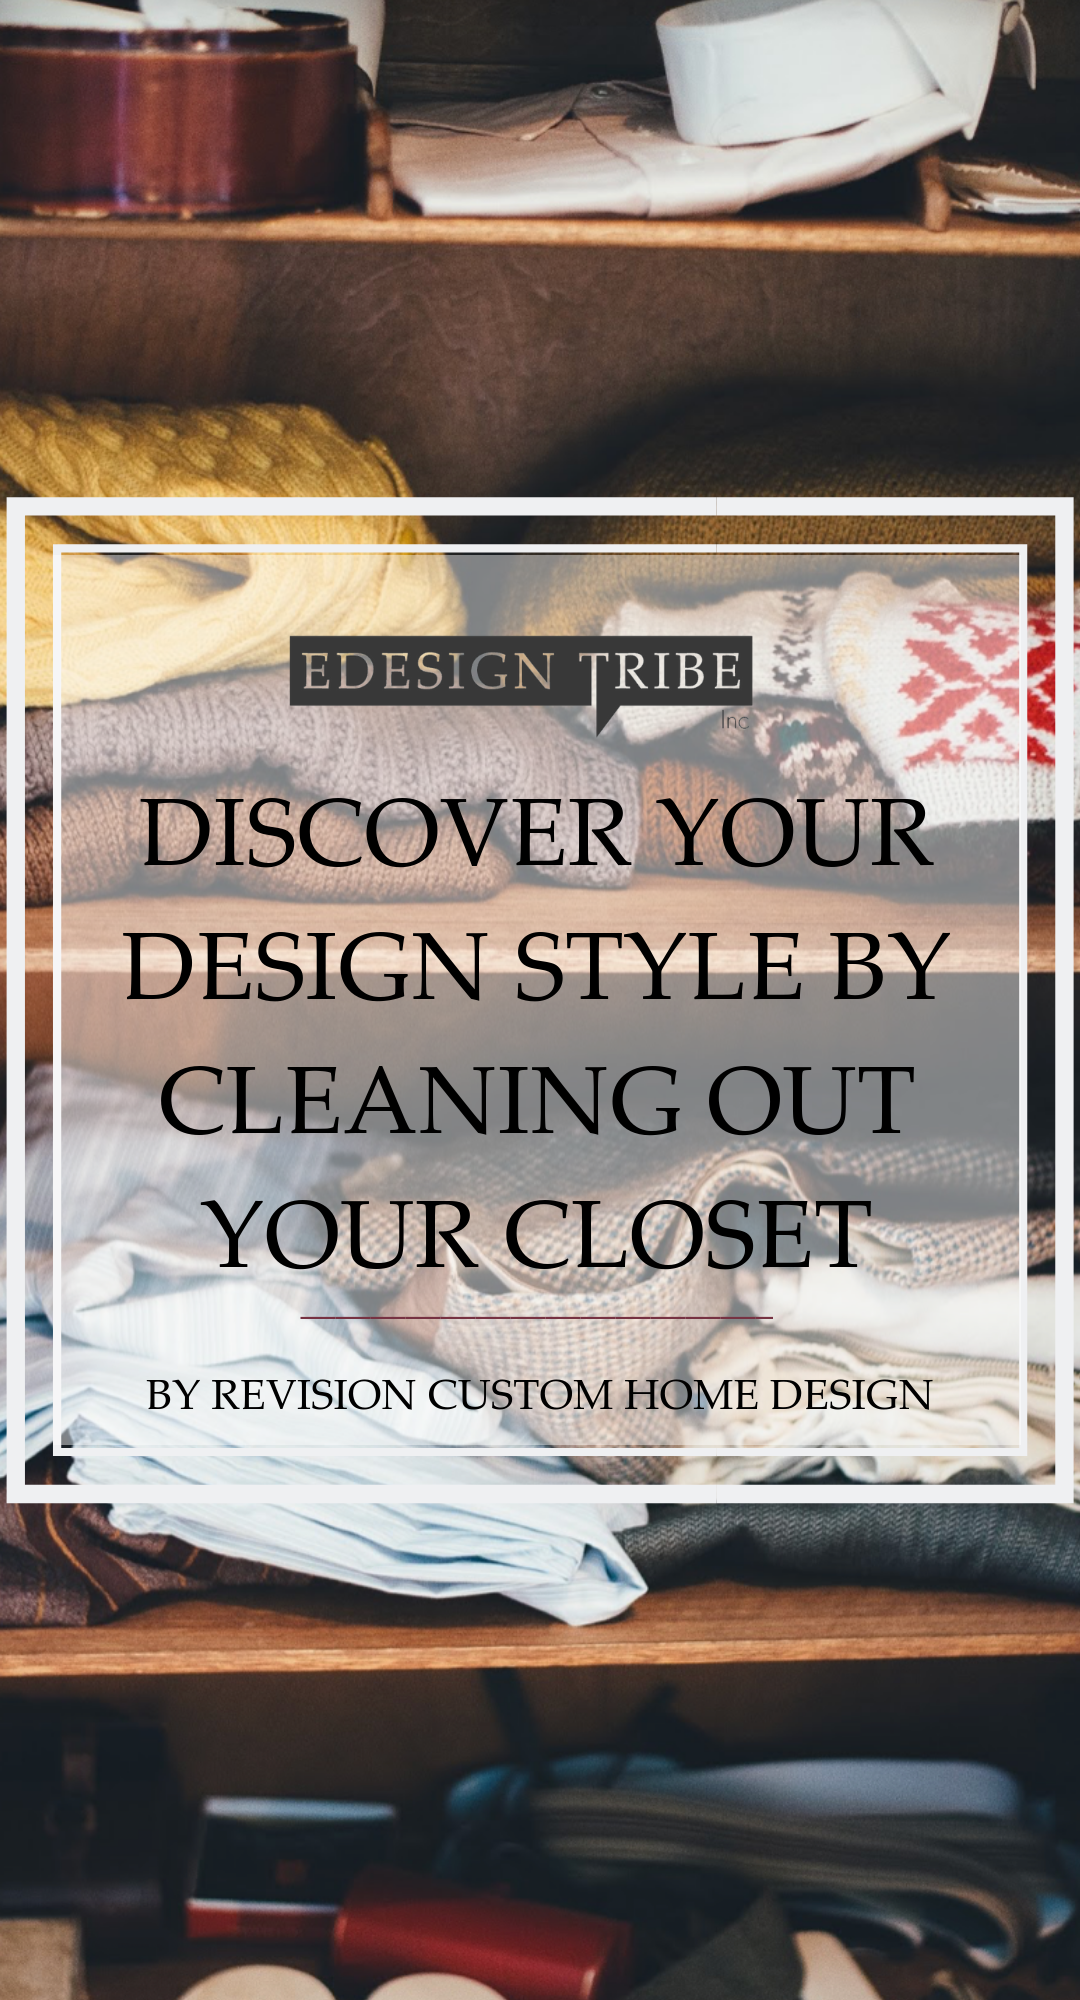 Discover Your Design Style by Cleaning Out Your Closet - eDesign Tribe Now I'm not going to get all Marie Kondo on you and tell you to figure   out what sparks your joy, and thank the things that you decide you're   going to get rid of (either by selling, donating, or tossing).  decluttering your home has the added bonus of decluttering your mind and reducing your stress. #organize #howtoorganize #howtodecorate #designhelp #declutter #springcleanng